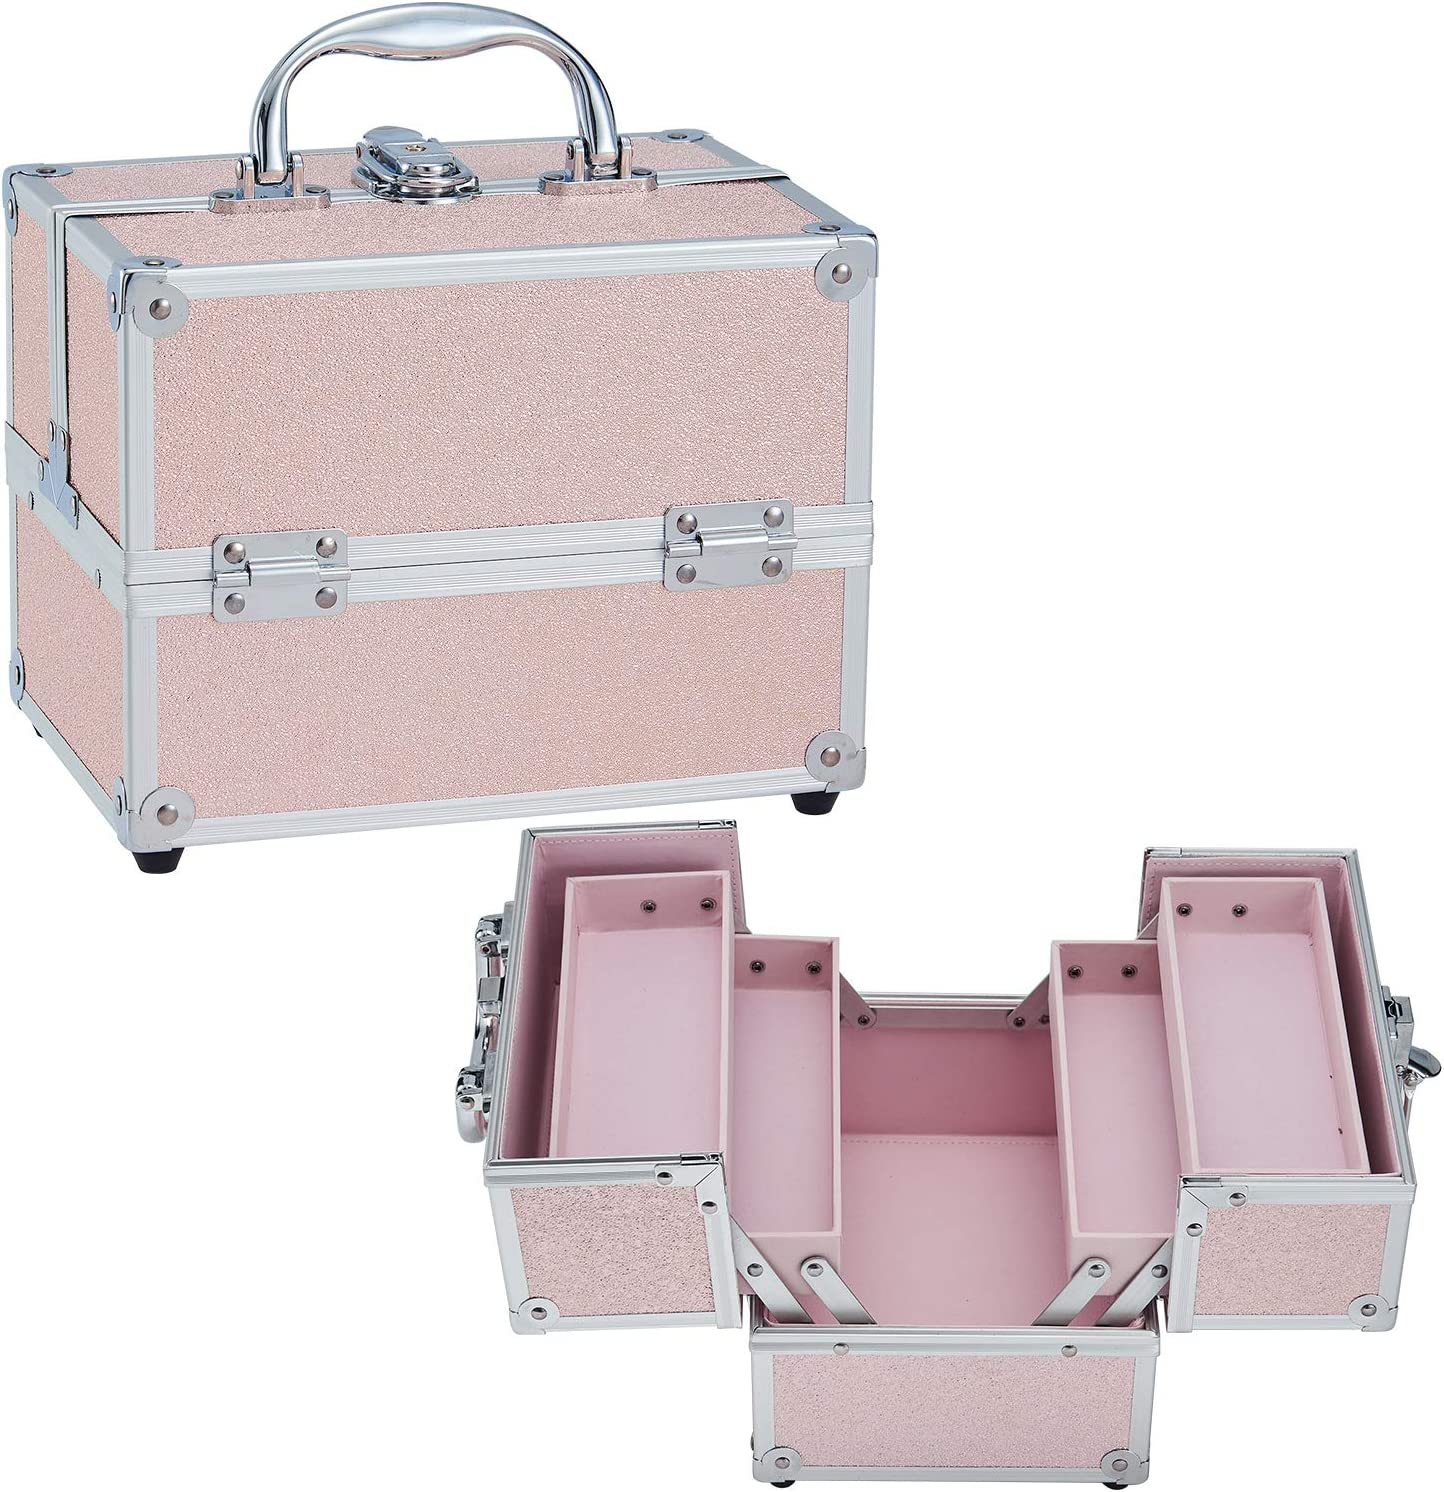 Costravio Portable Makeup Train Case Cosmetic - Fixed price for Limited time trial price sale 4 Tier Box Trays